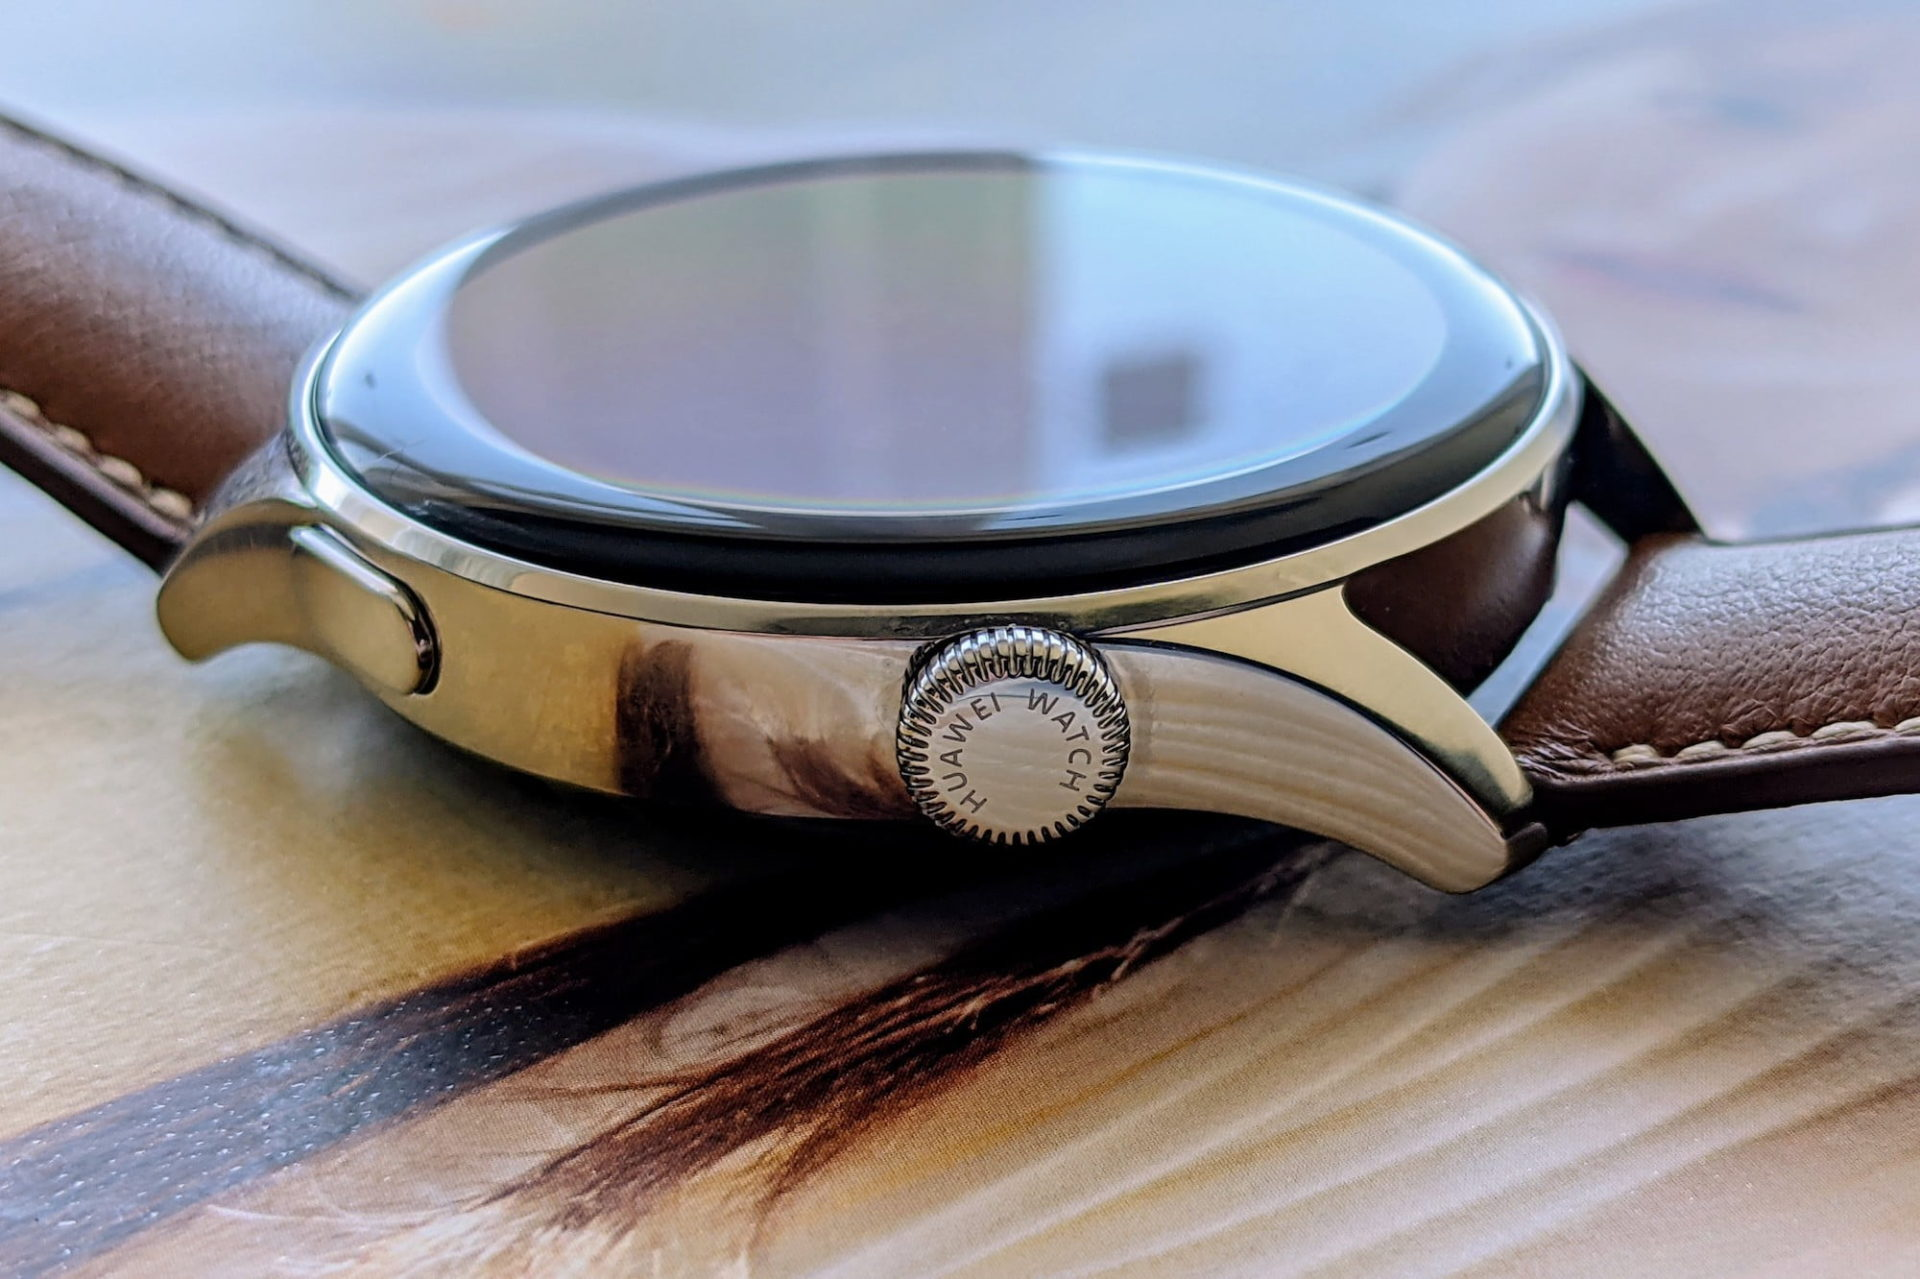 The Huawei Watch 3's crown with inscription